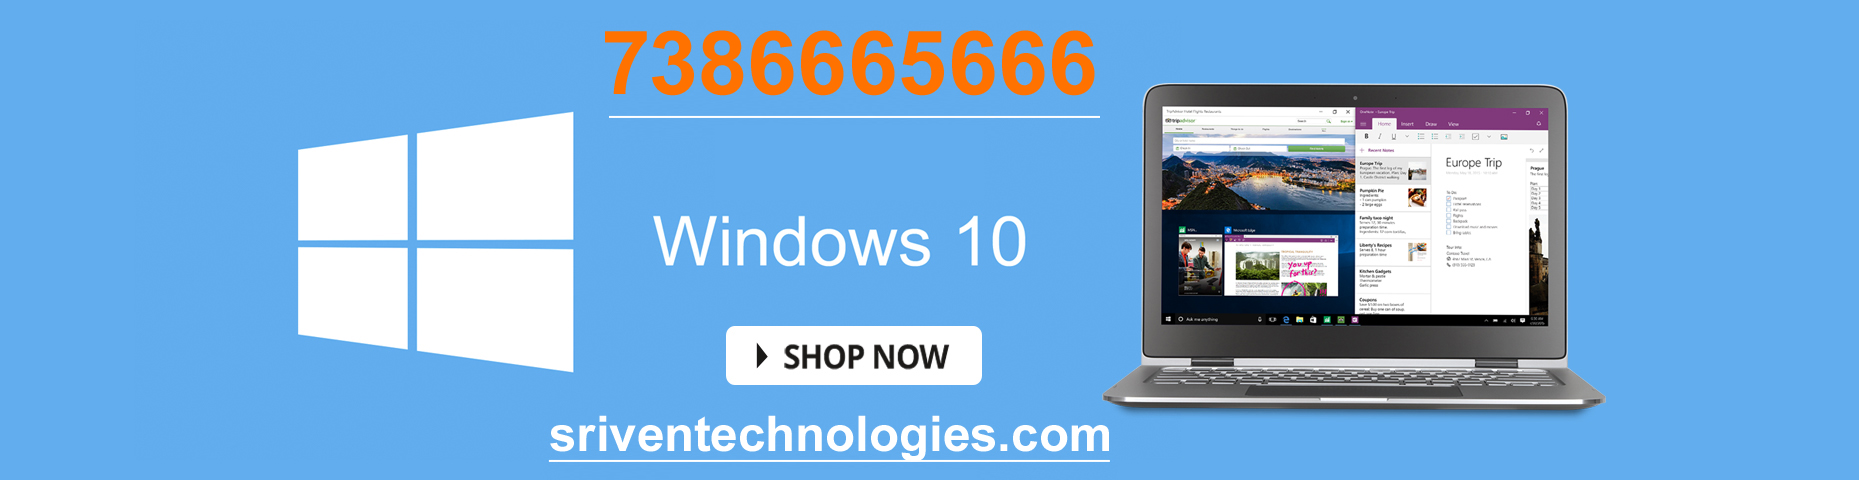 Sriven Technologies - Used Computers & Laptop Sales in